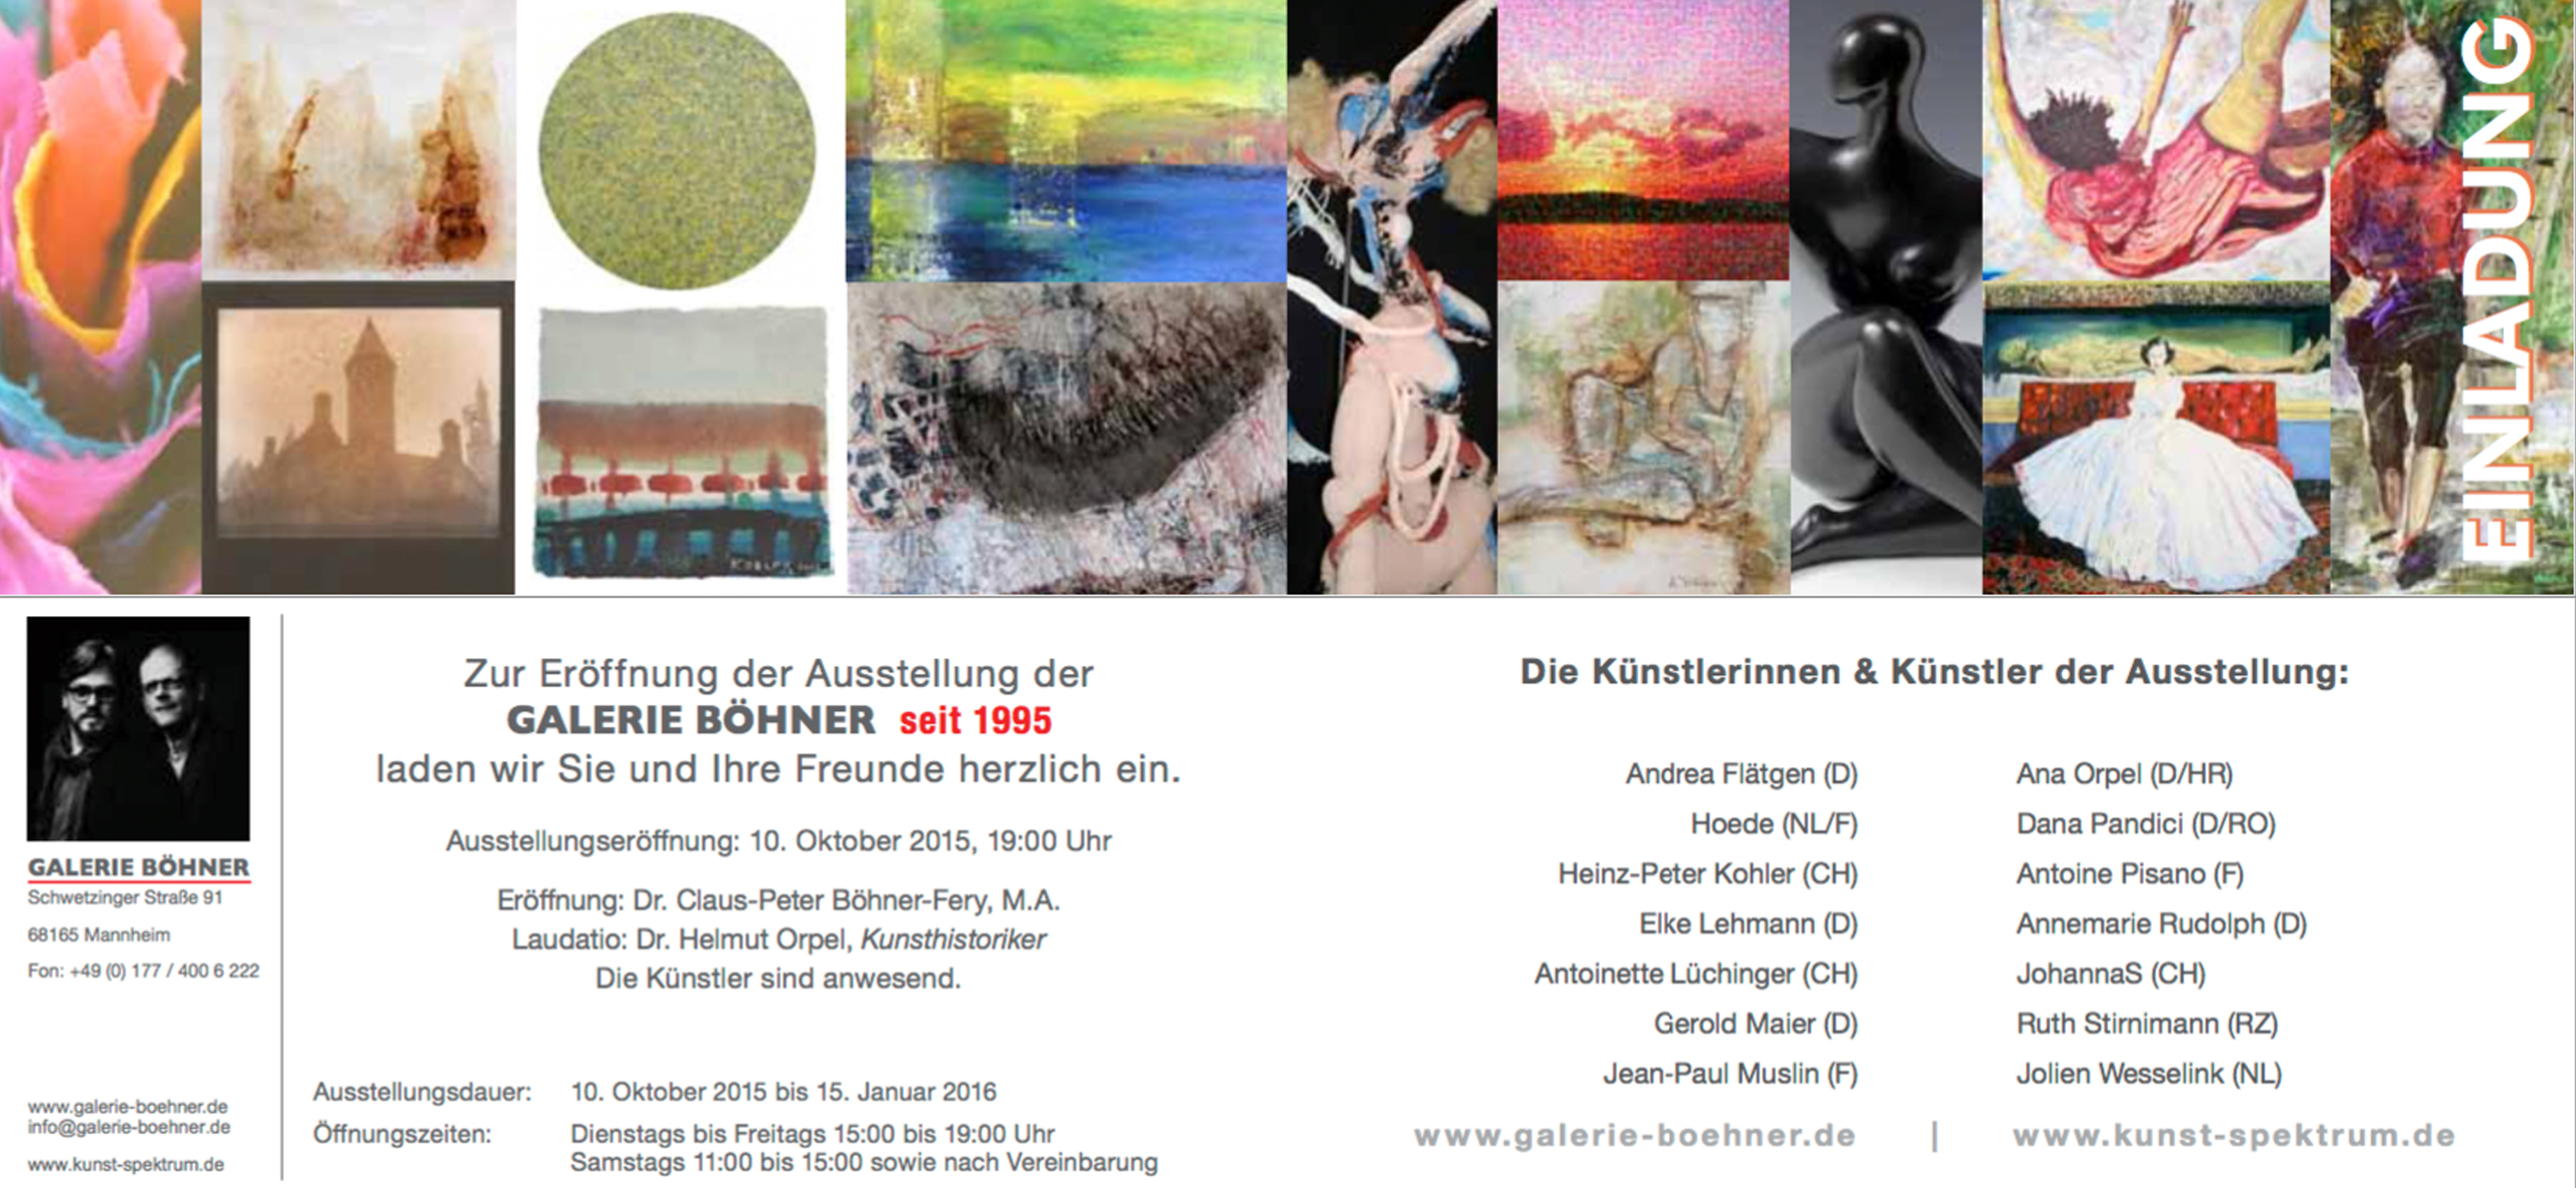 Invitation to the next exhibition exhibition opening